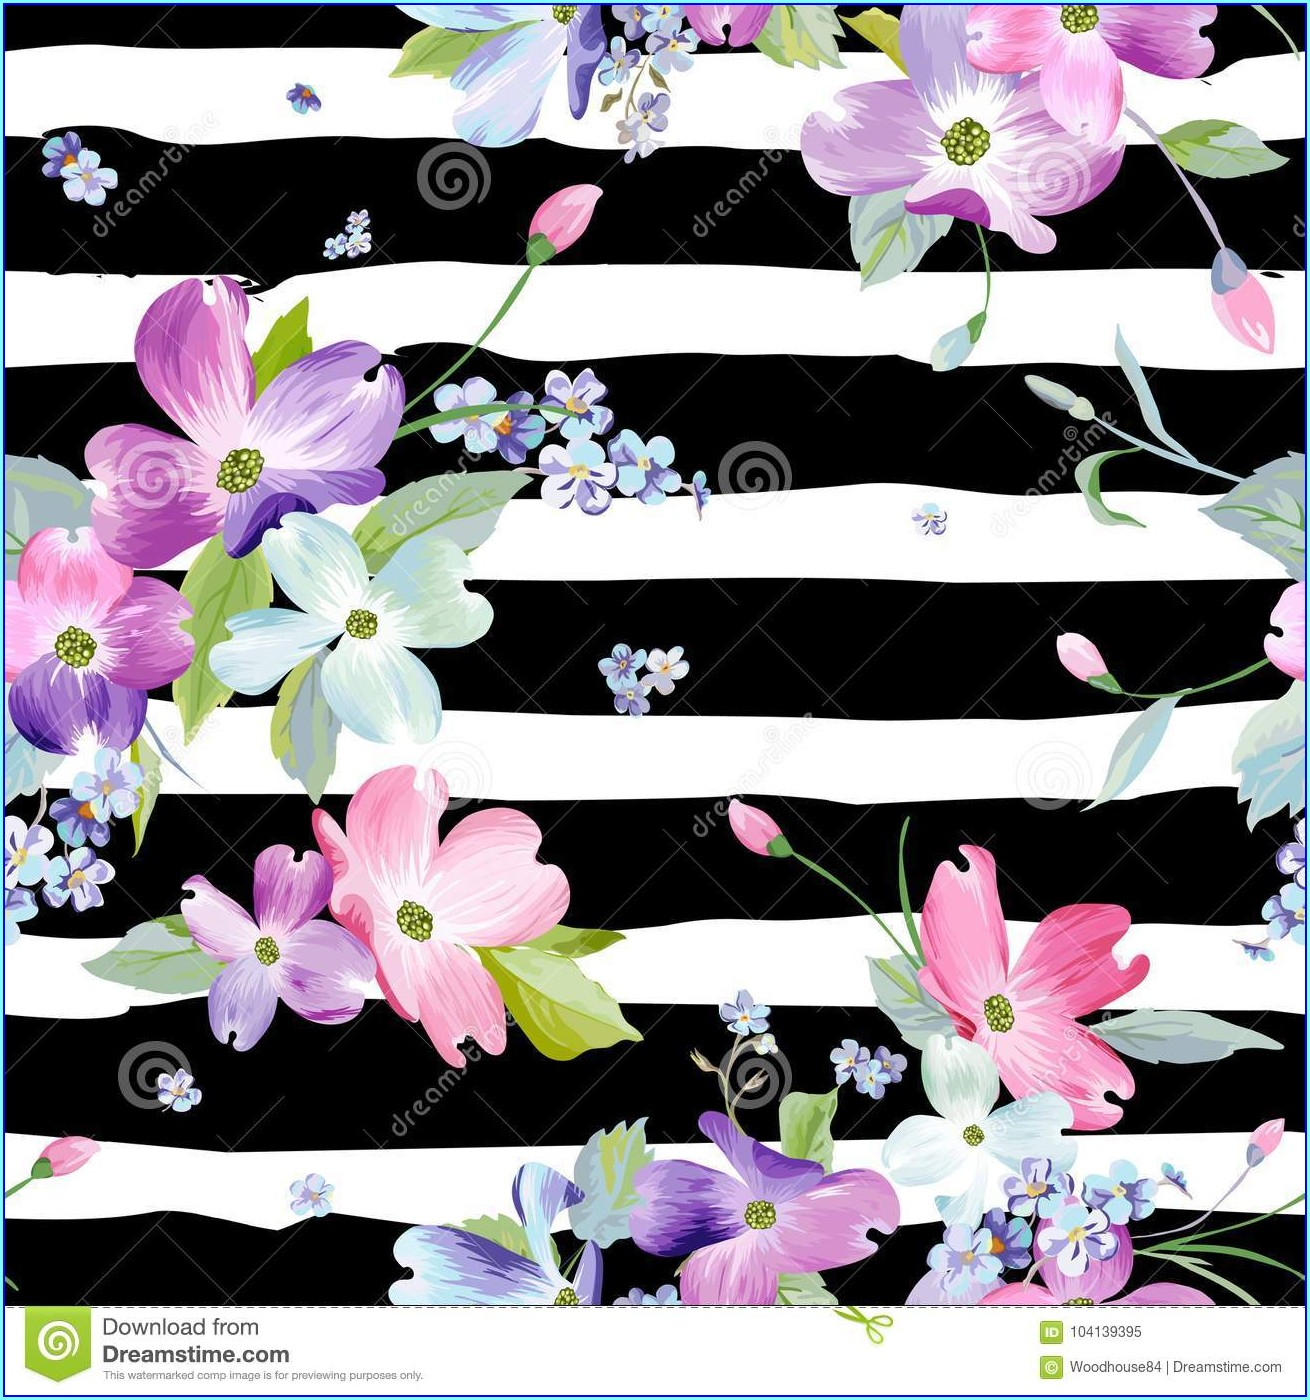 Watercolor Floral Background For Invitation